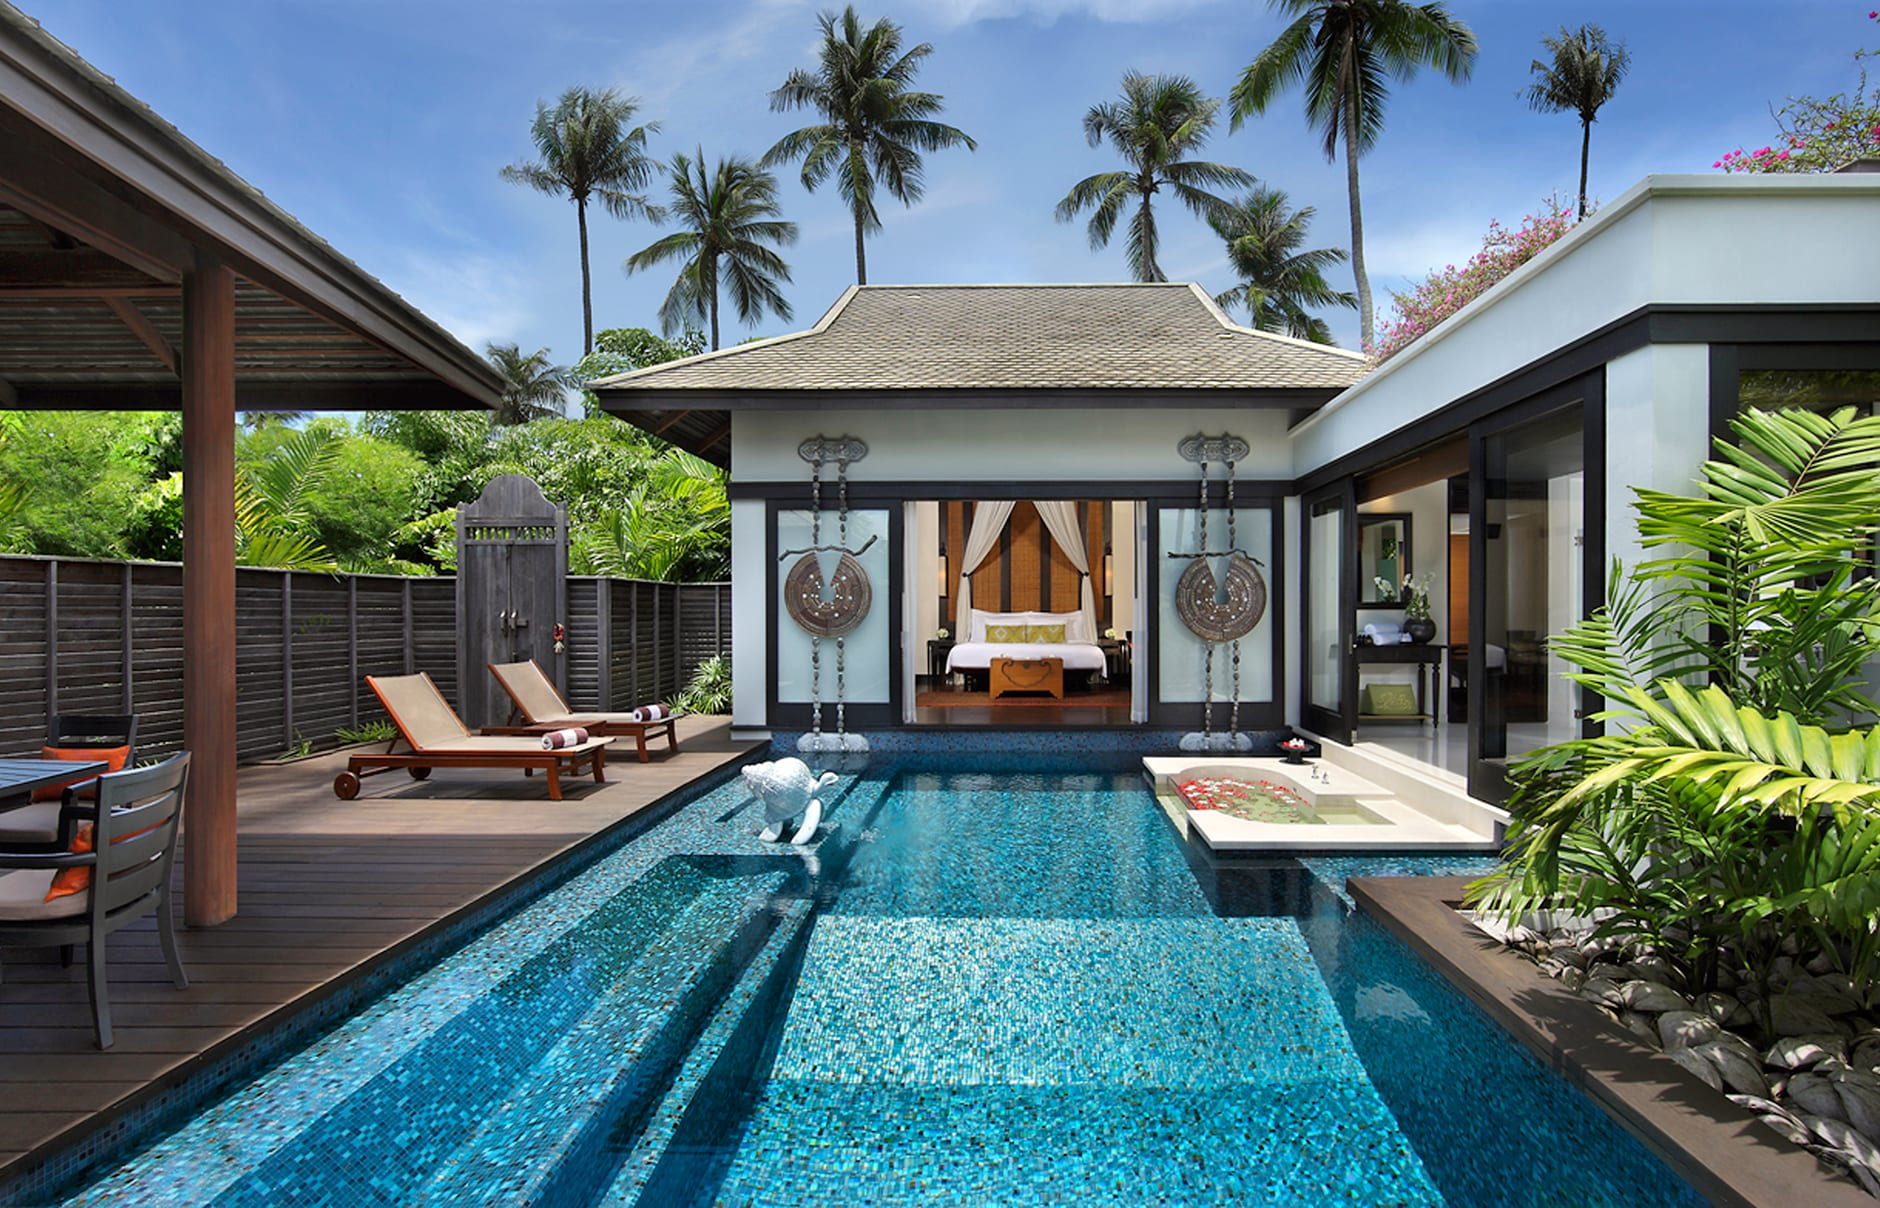 Anantara phuket villas luxury hotels travelplusstyle for Luxury resorts